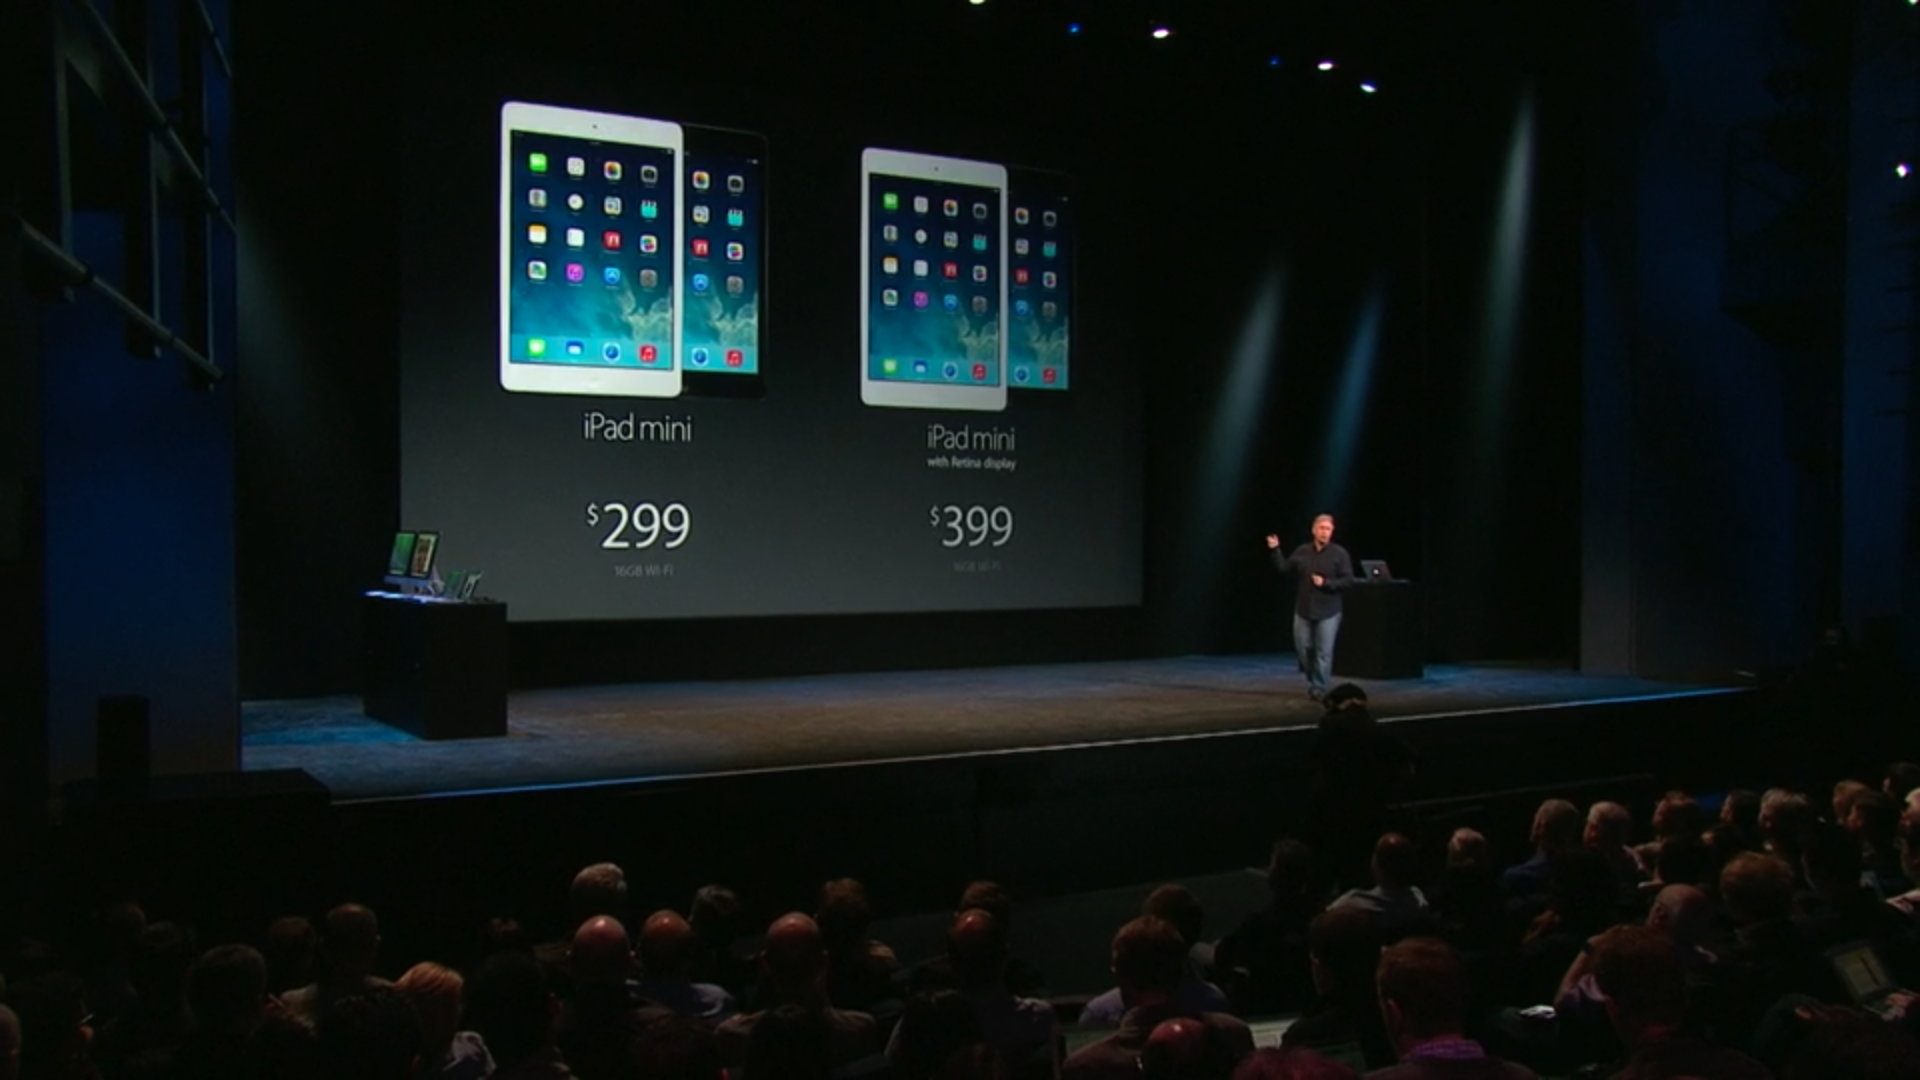 ipad-mini-price-2